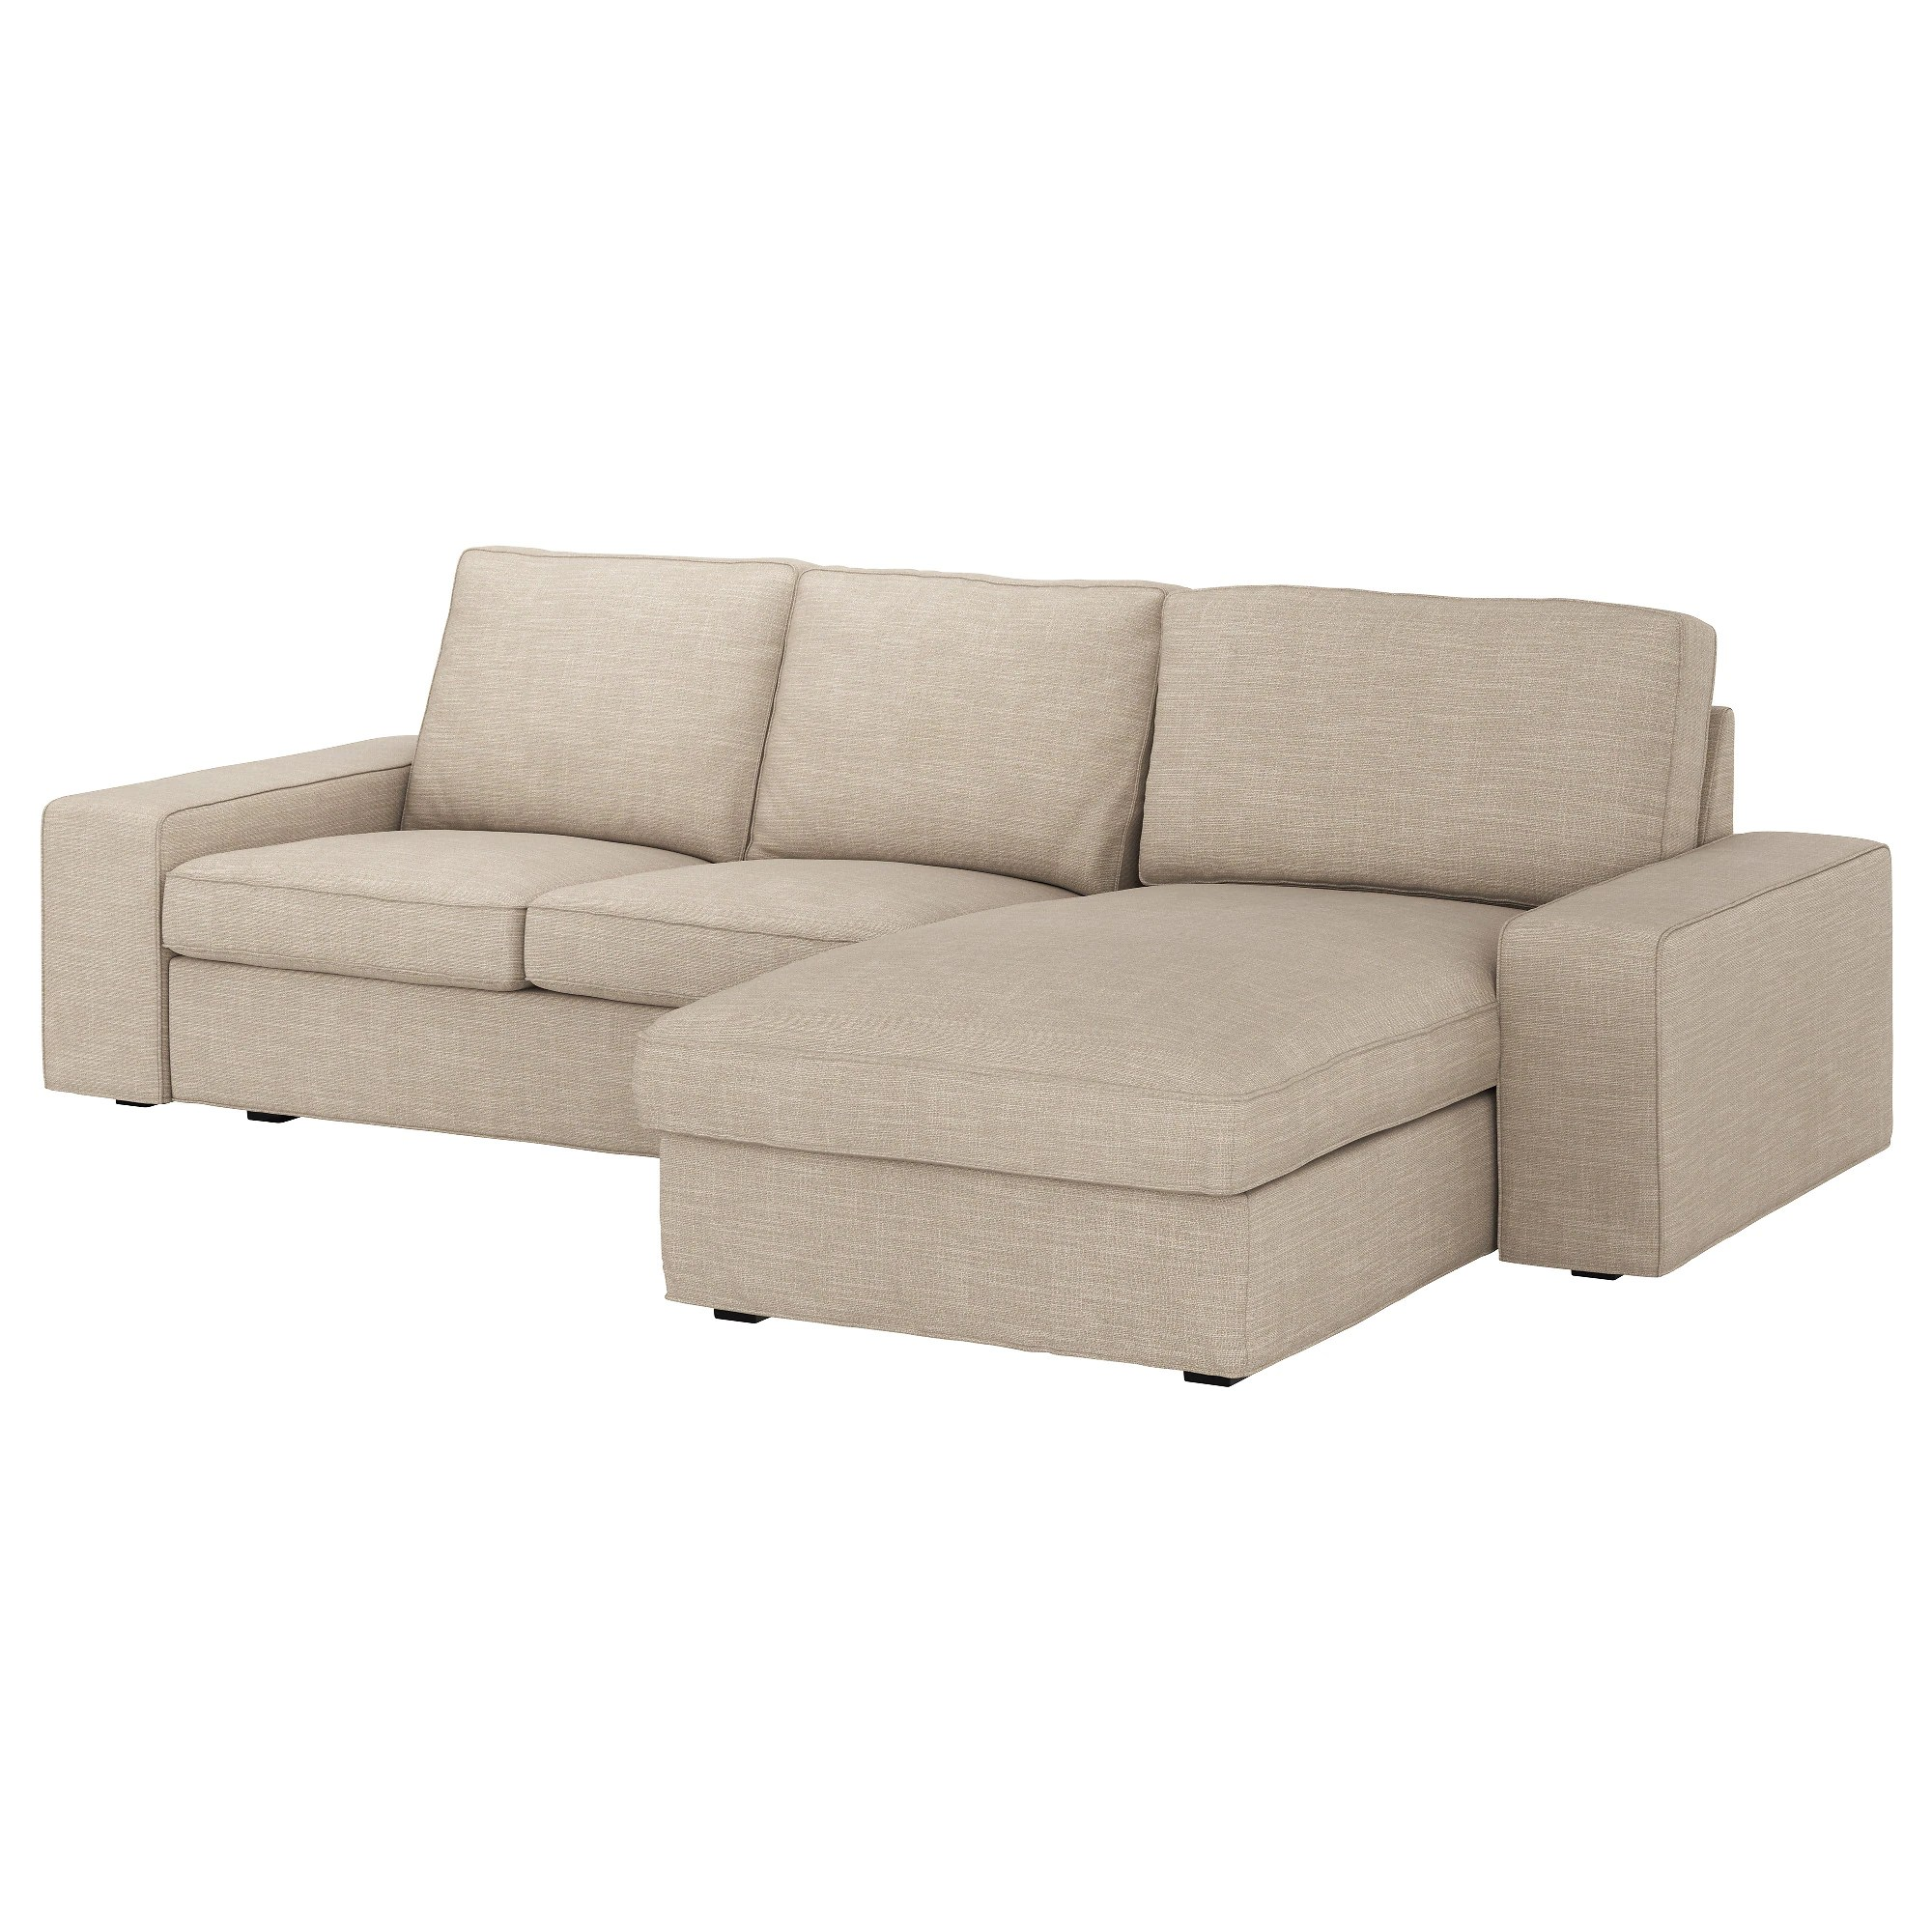 Ikea Kivik Sofa Recamiere 3 Seat Sofa Kivik Hillared With Chaise Longue Hillared Beige